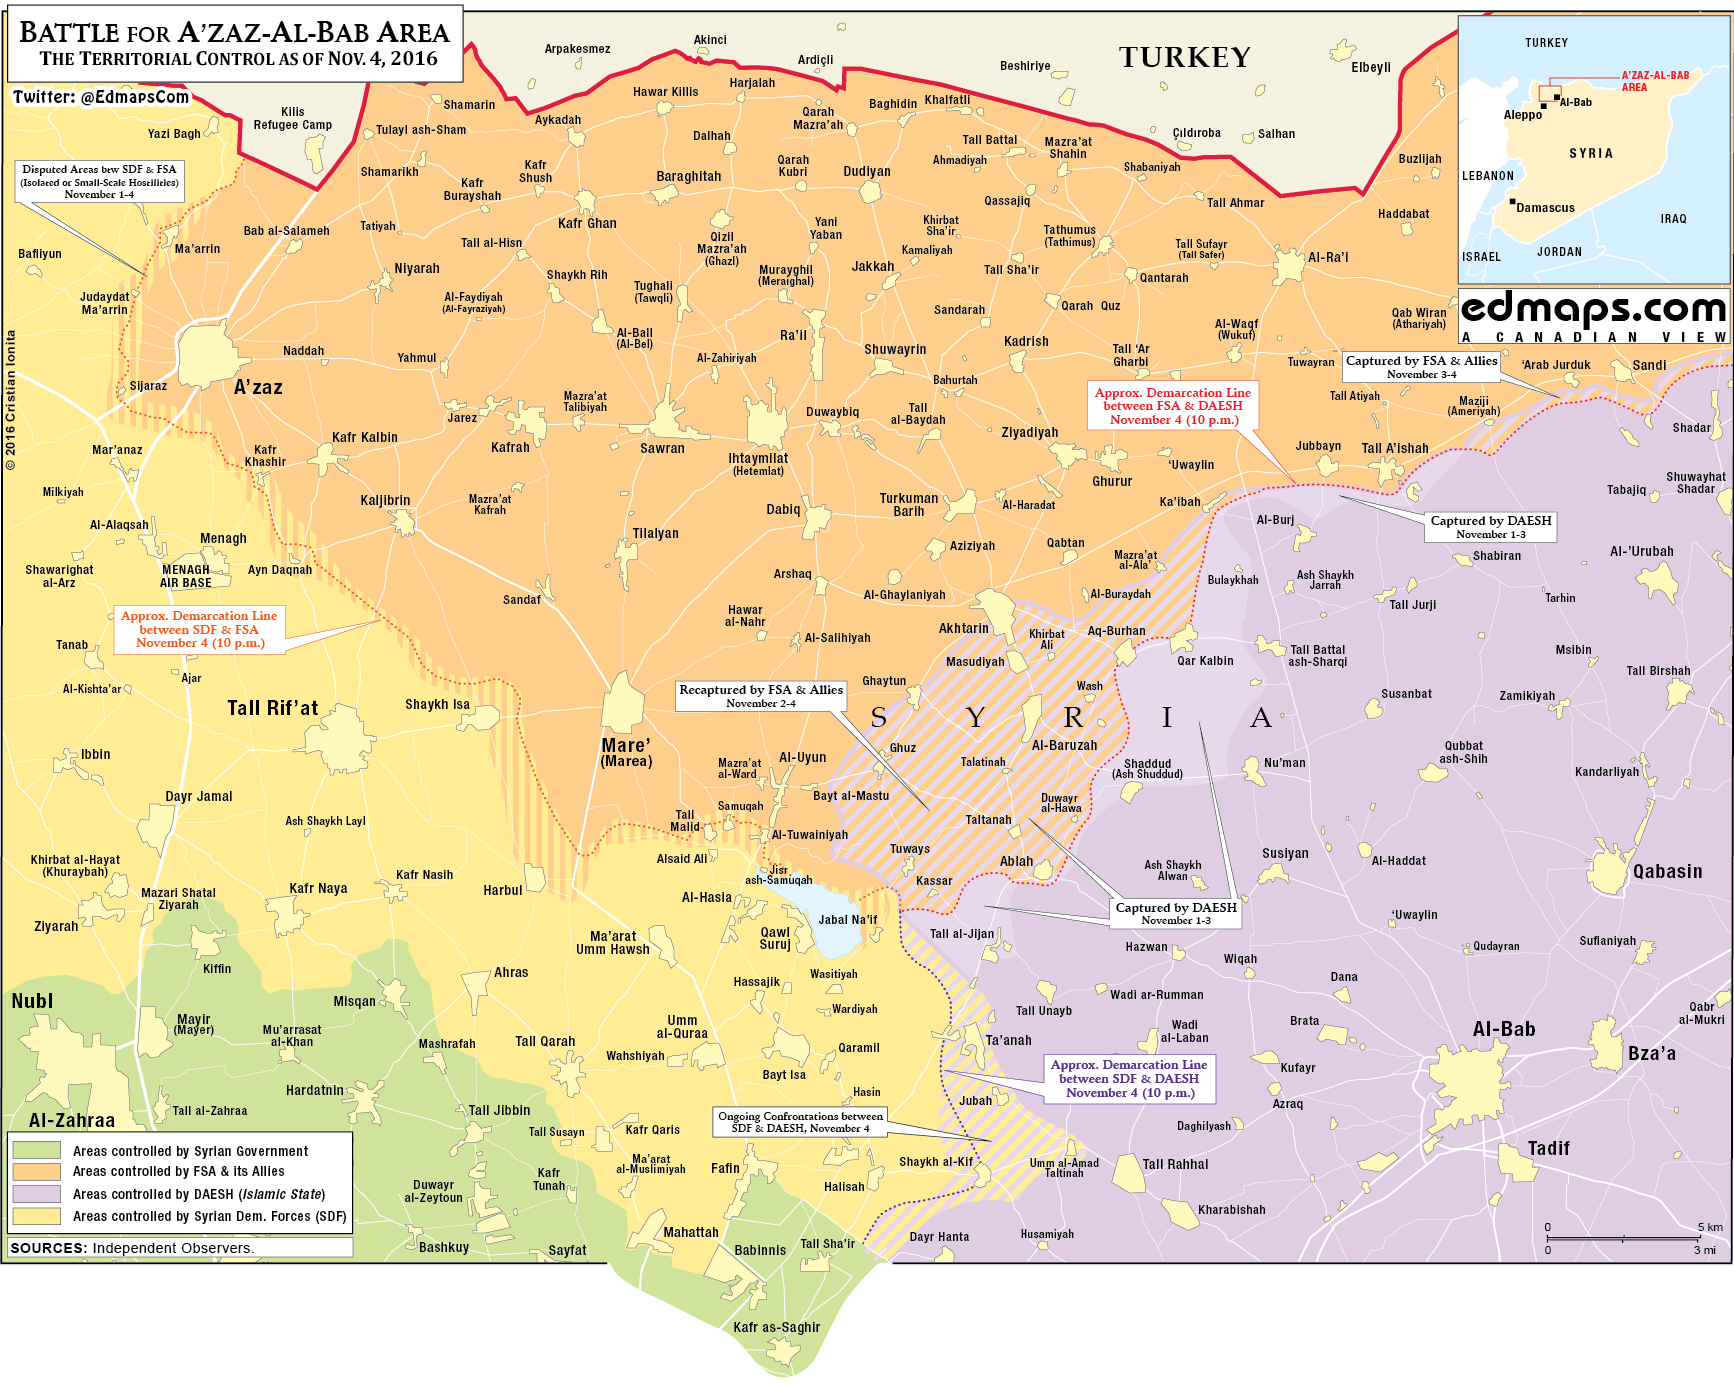 Syria War Map: Military Situation in Northeast of Aleppo City on November 4